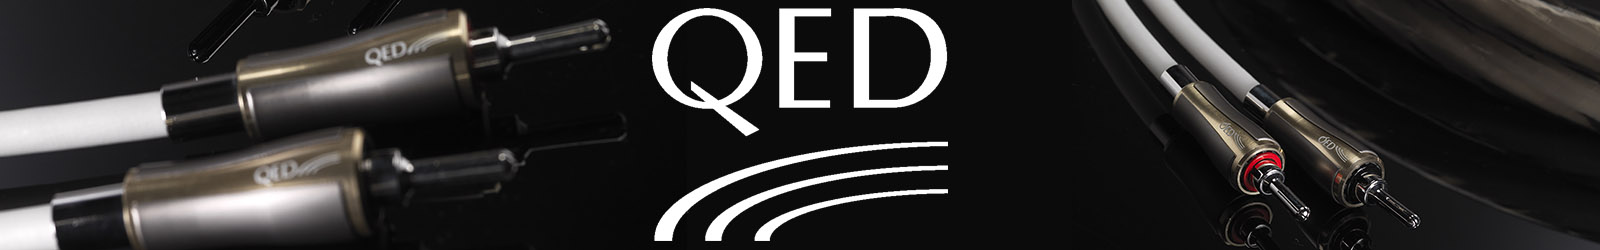 QED Banner